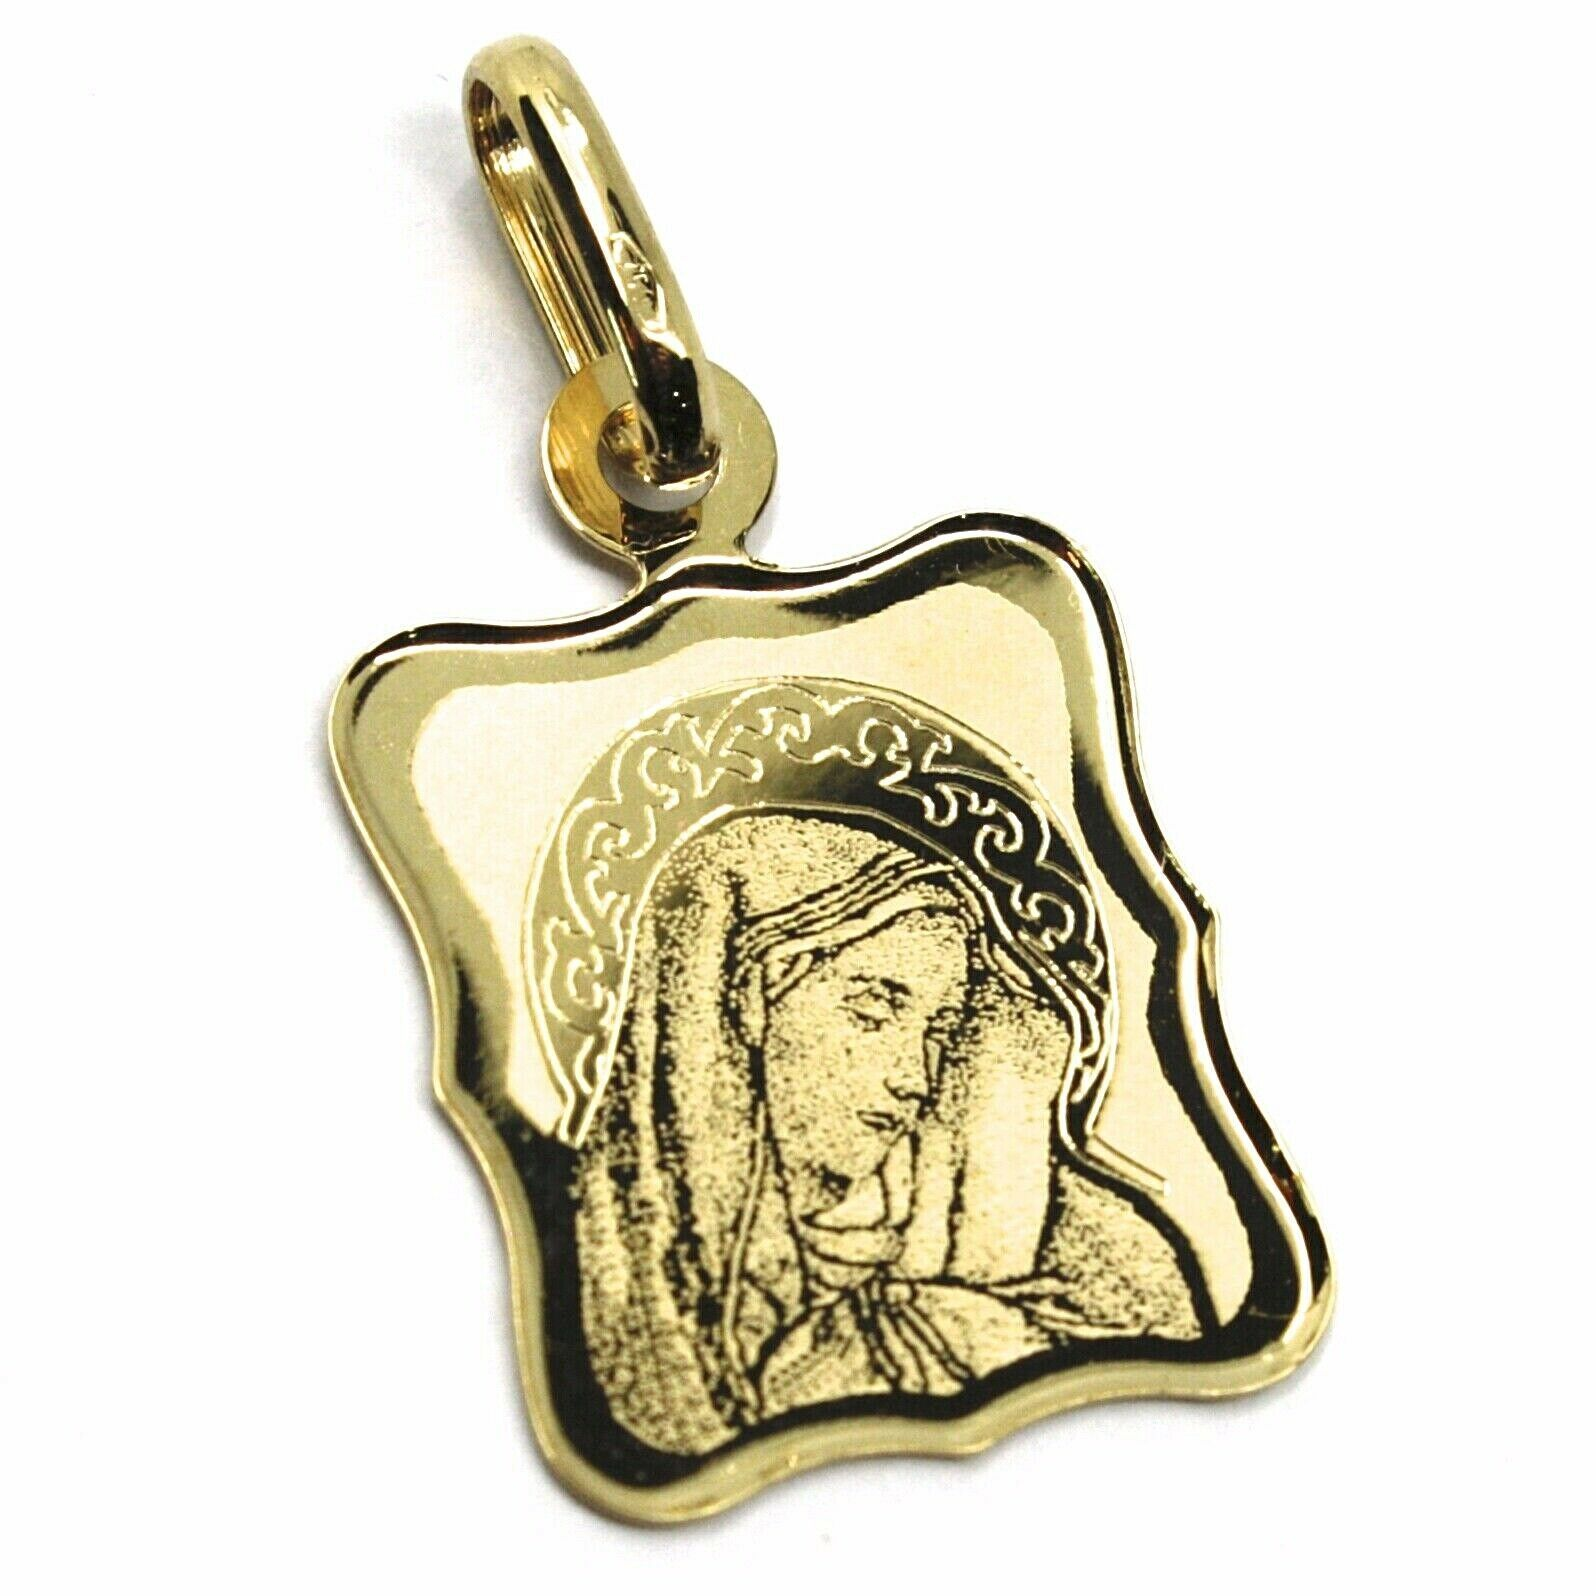 SOLID 18K YELLOW RECTANGULAR GOLD MEDAL 16mm VIRGIN MARY OUR LADY OF SORROWS